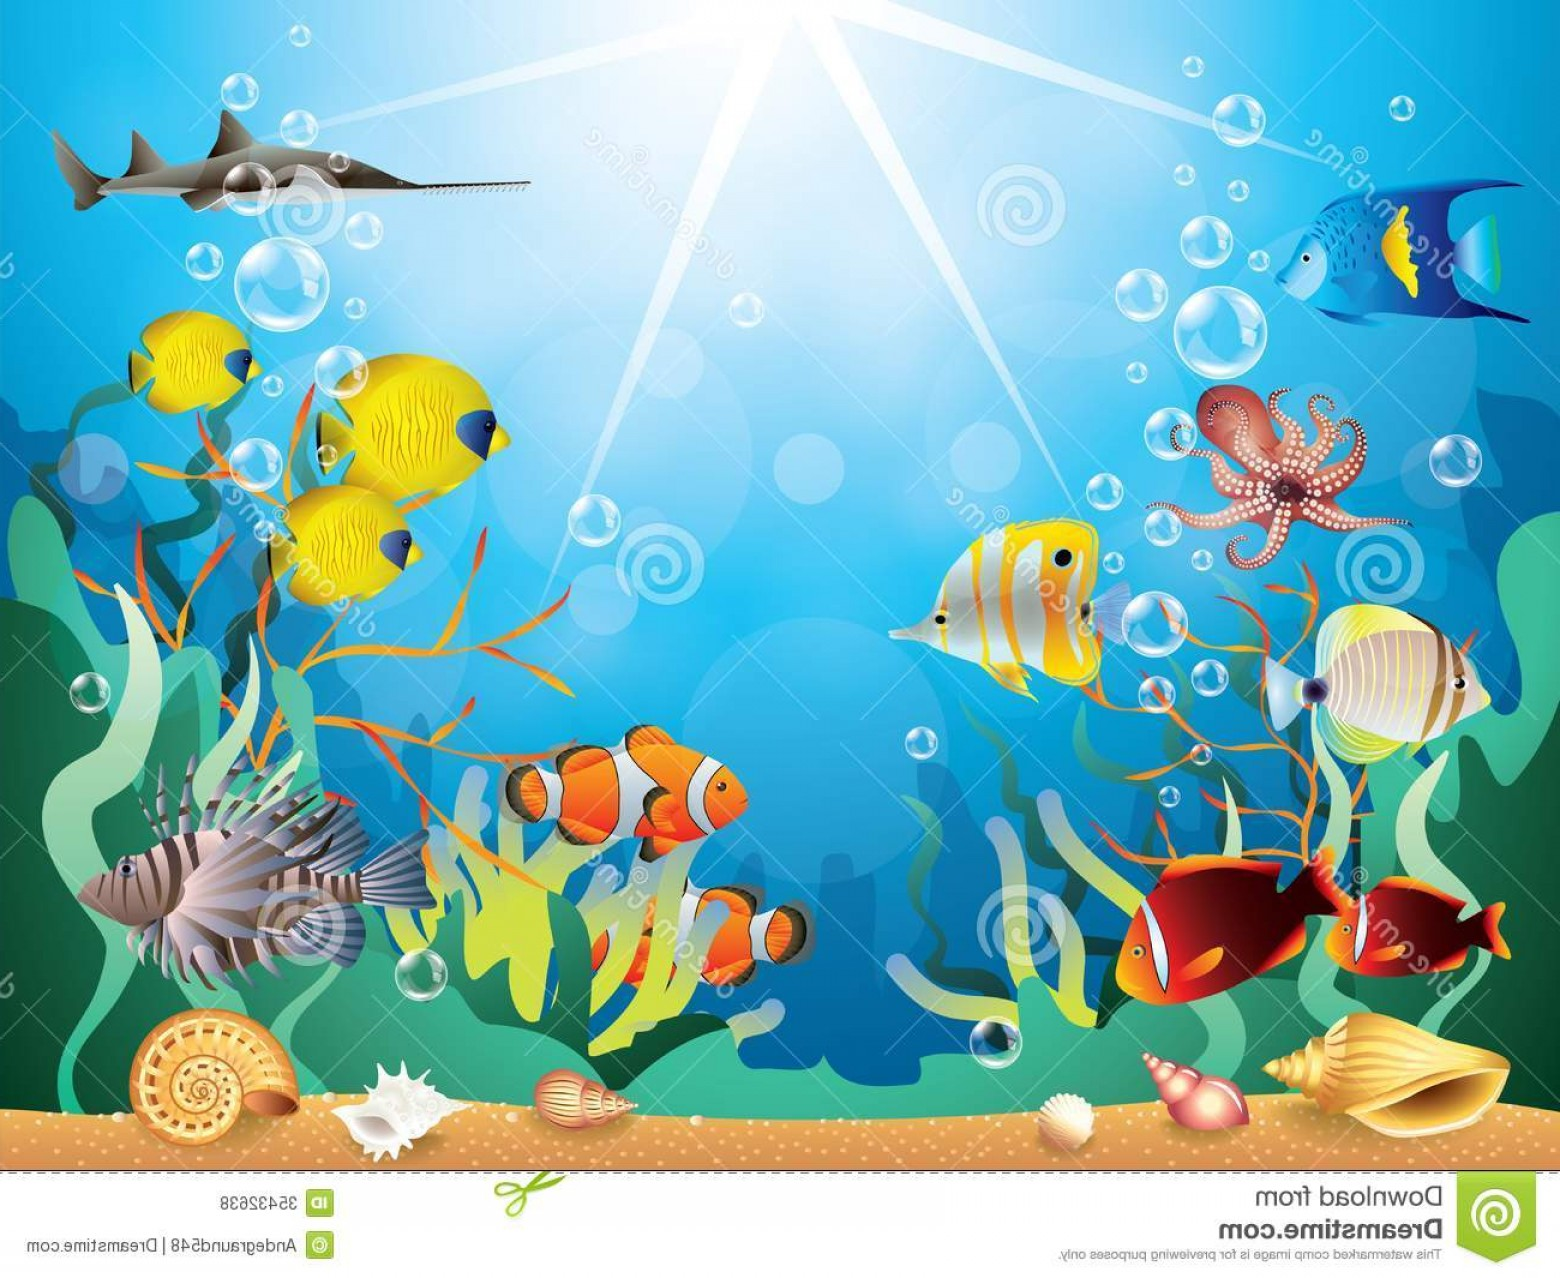 Underwater Sea Vector Art: Royalty Free Stock Photos Underwater World Vector Illustration Reefs Tropical Fishes Image